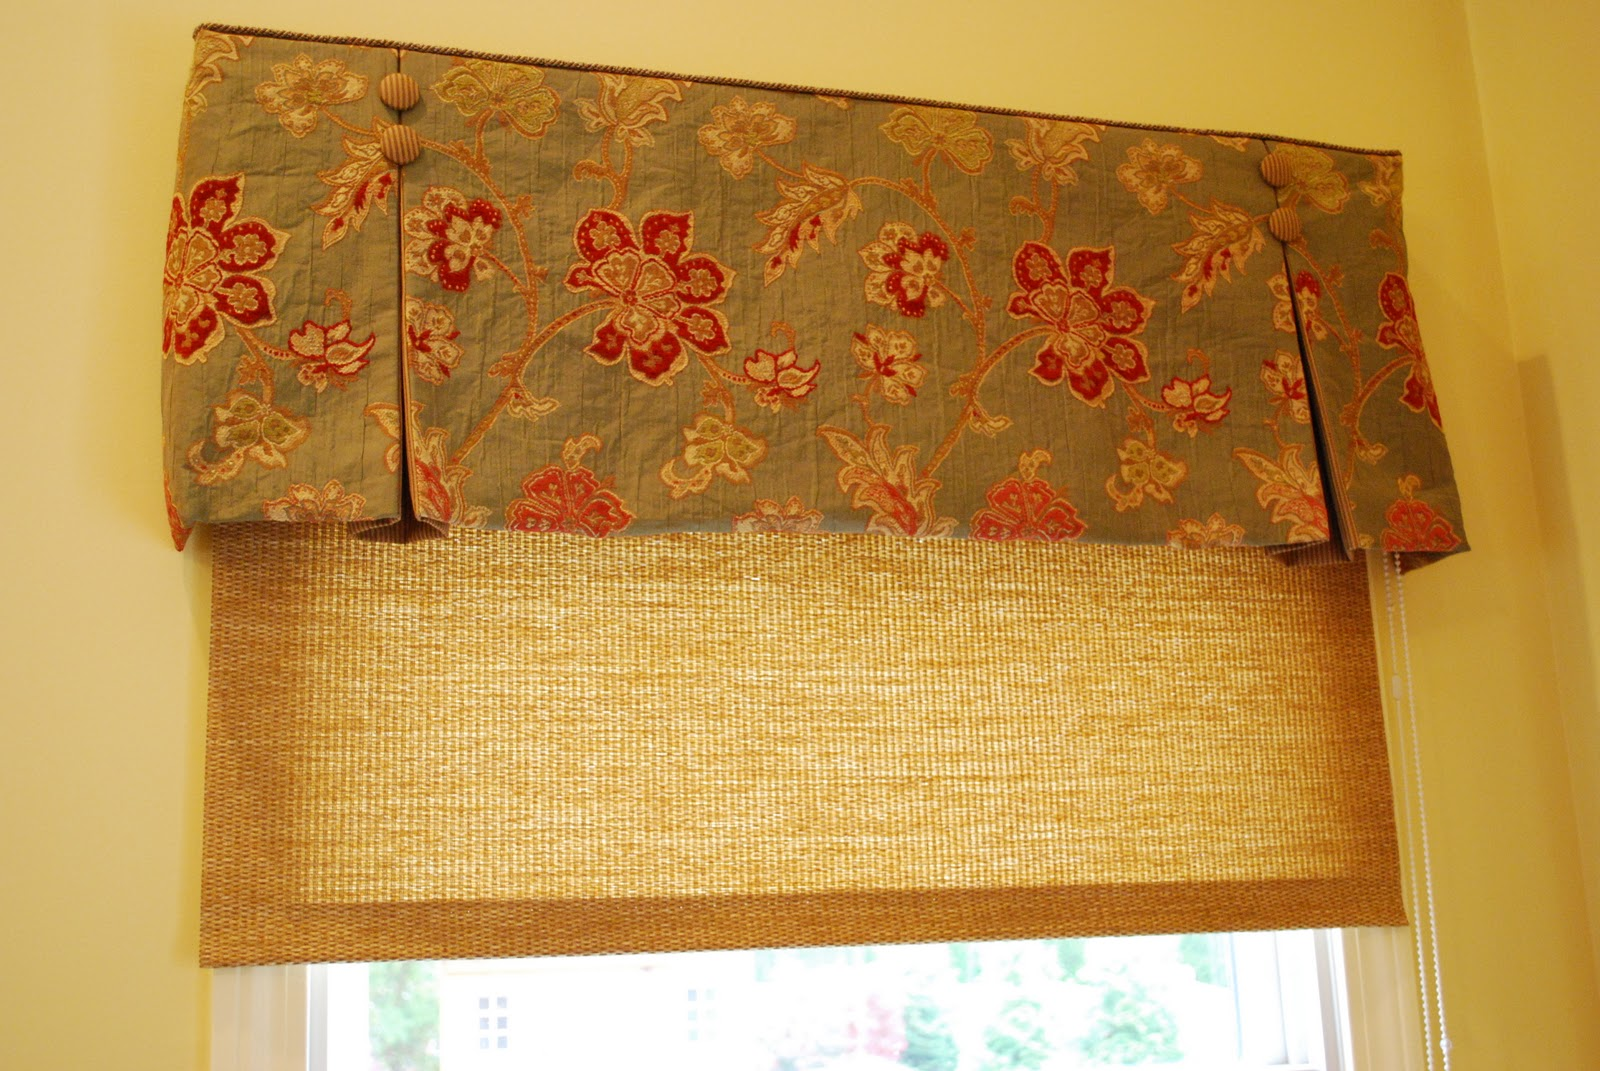 Boynton Beach Window treatments | Window treatments in Boynton